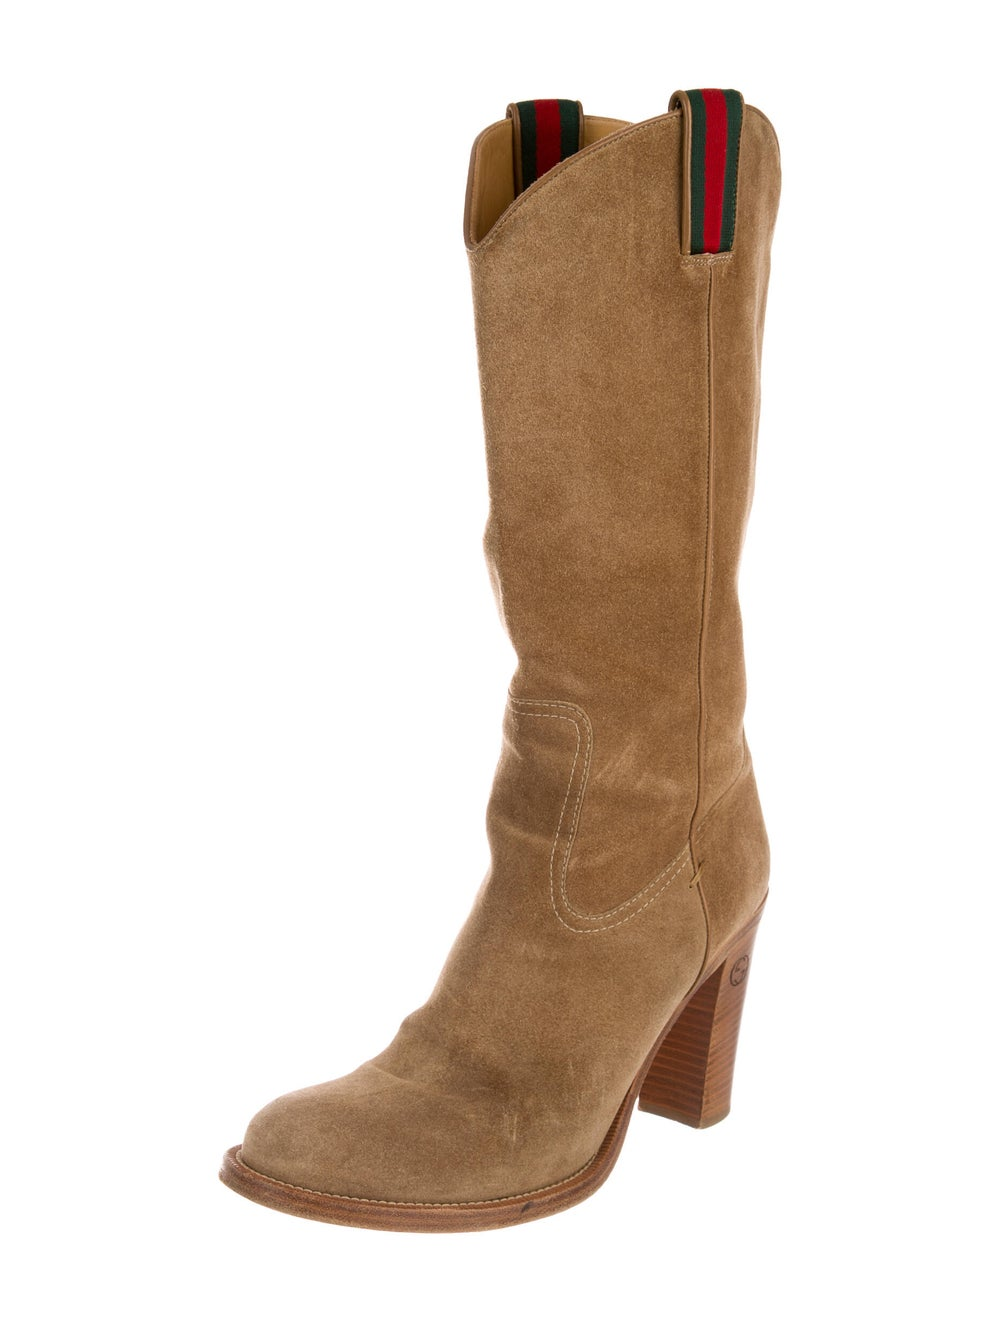 Gucci Suede Western Boots - image 2